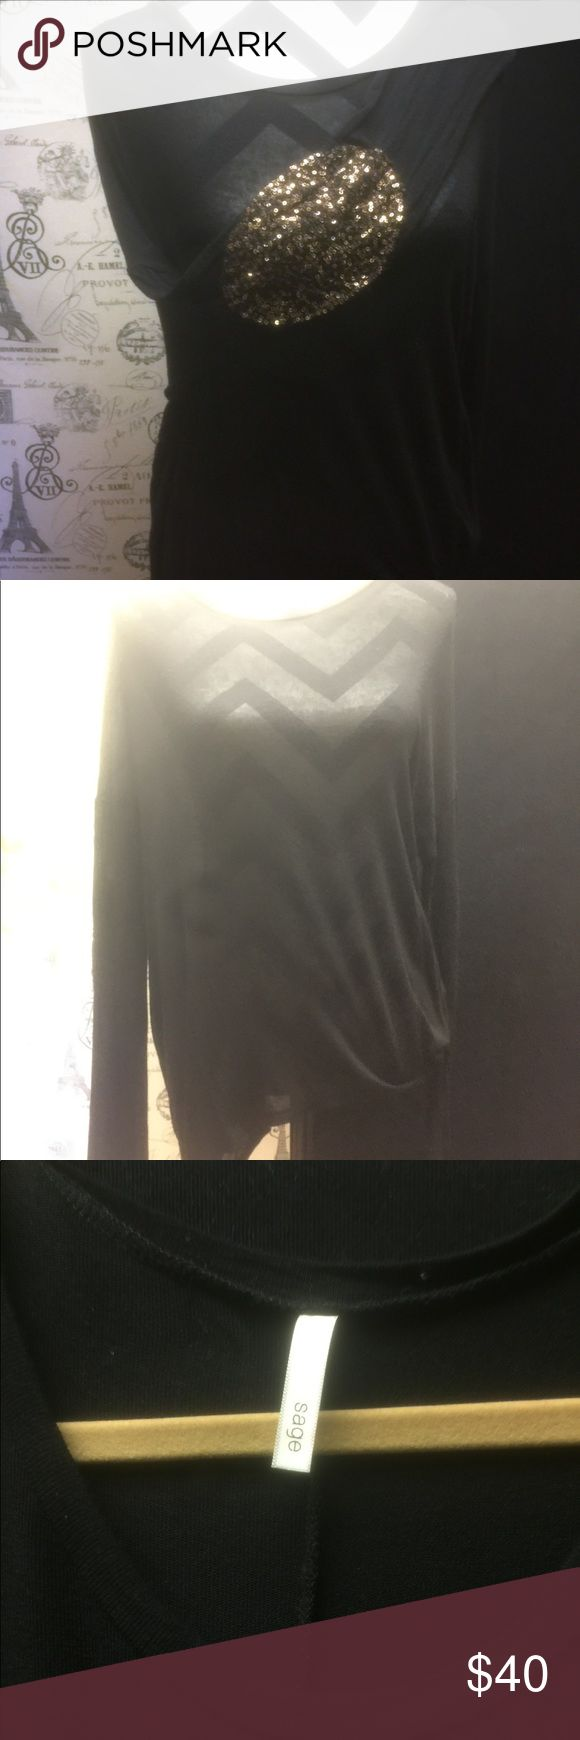 ROSE GOLD SEQUIN ELBOW PAD BLACK BAT WING TUNIC SEMI SHEER TYPE MATERIAL TIGHT SLEEVES FITS LADIES SMALL-LARGE BEST PERFECT FOR LAYERING THIS COOL SEASON ADD LULAROE LEGGINGS FOR A GLAM STYLE Sage Tops Tunics